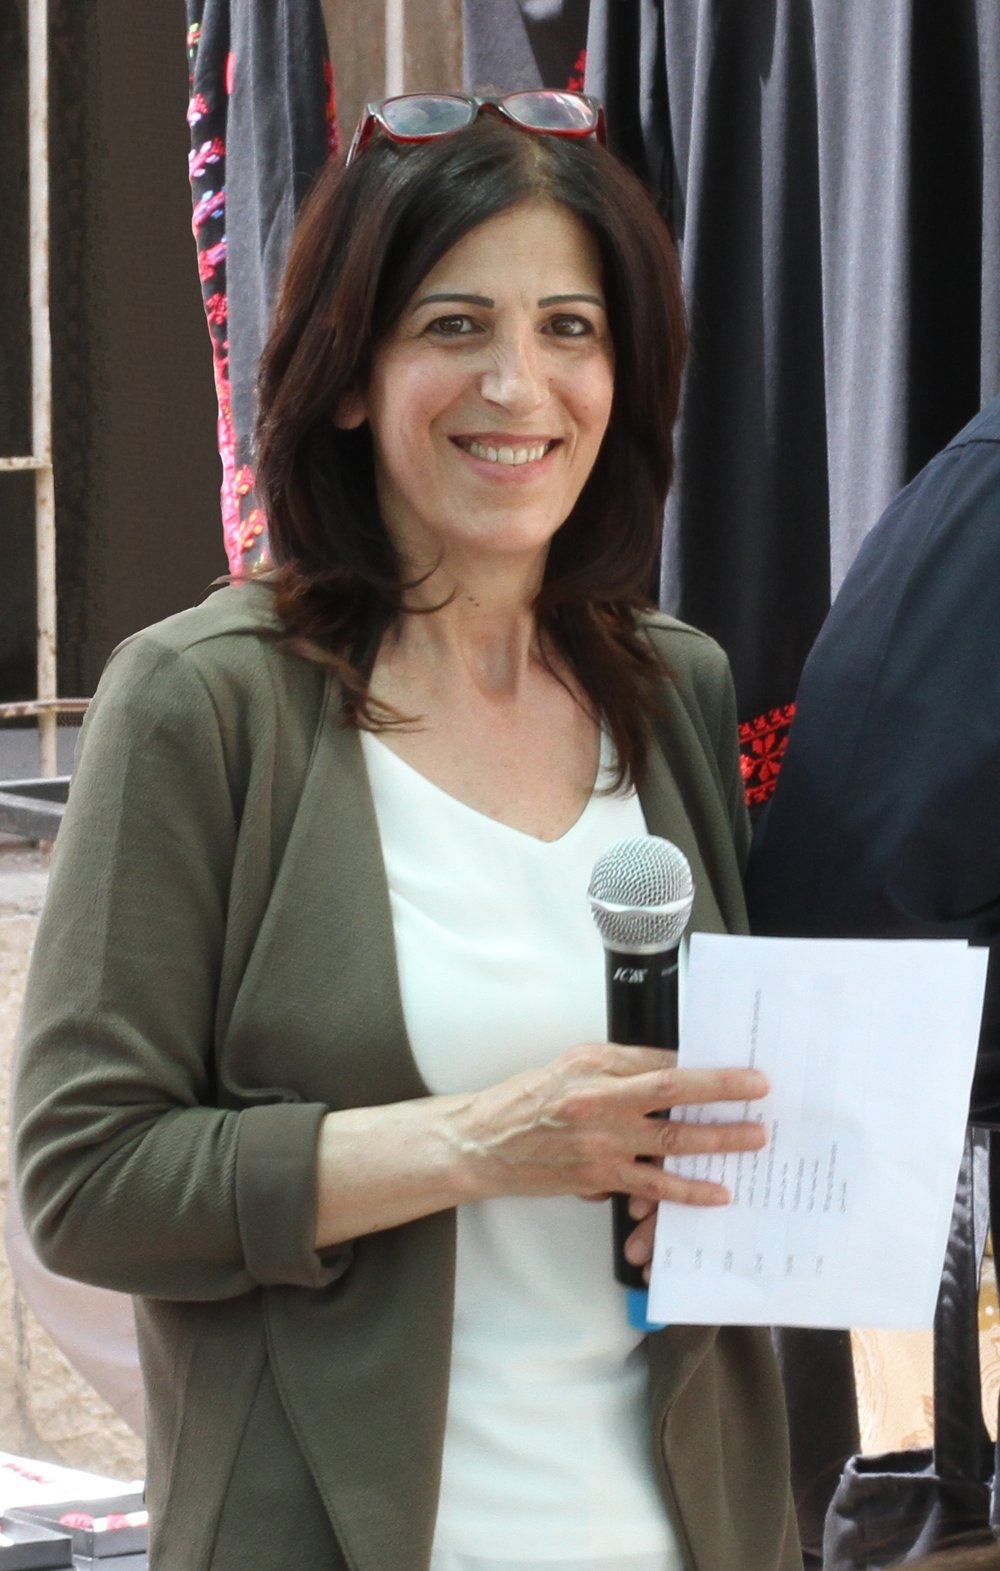 Suzan Sahori with BFTA